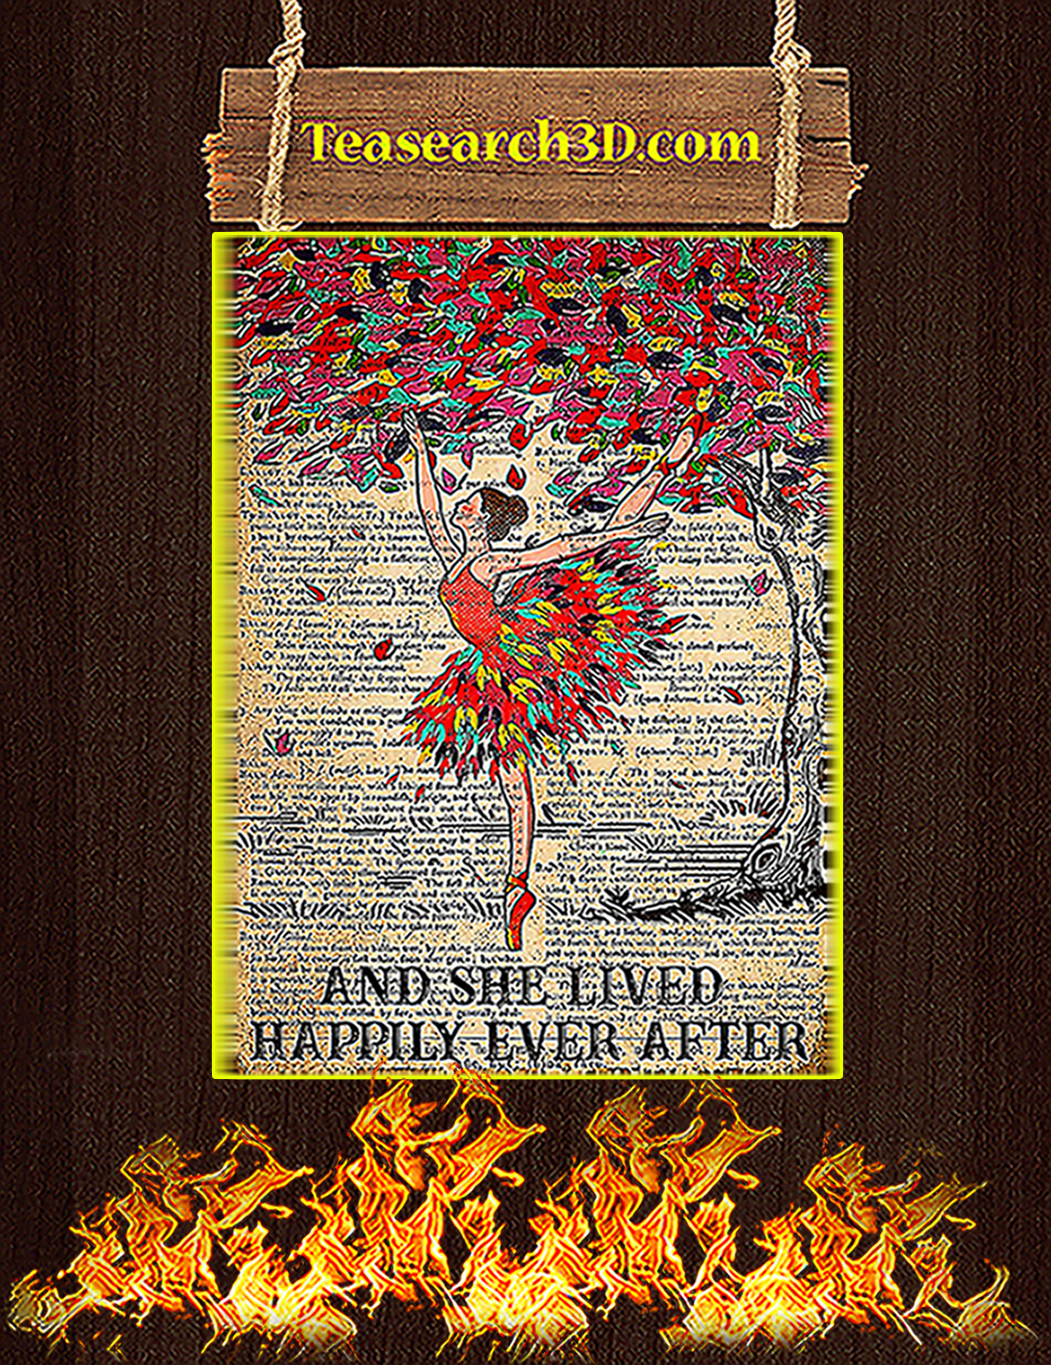 Ballet And she lived happily ever after poster A1